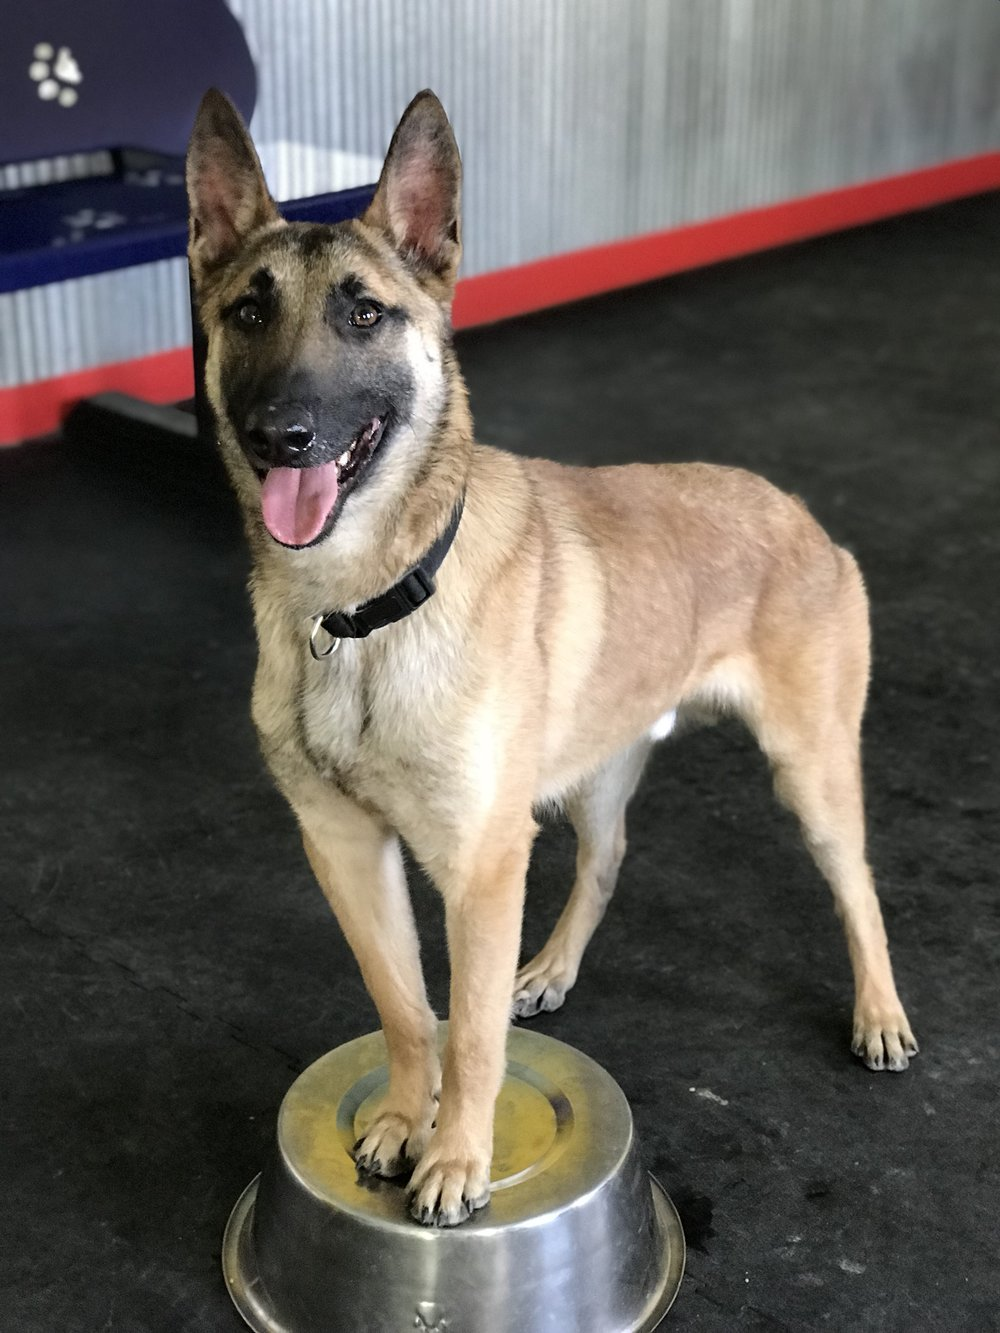 Crypto (Sold) - Crypto is a 1.5 year old Belgian Malinois. He is trained in narcotics detection. Crypto is an intact male with high ball and hunt drive. Give us a call today to come check out this beautiful boy! Price: $5,000